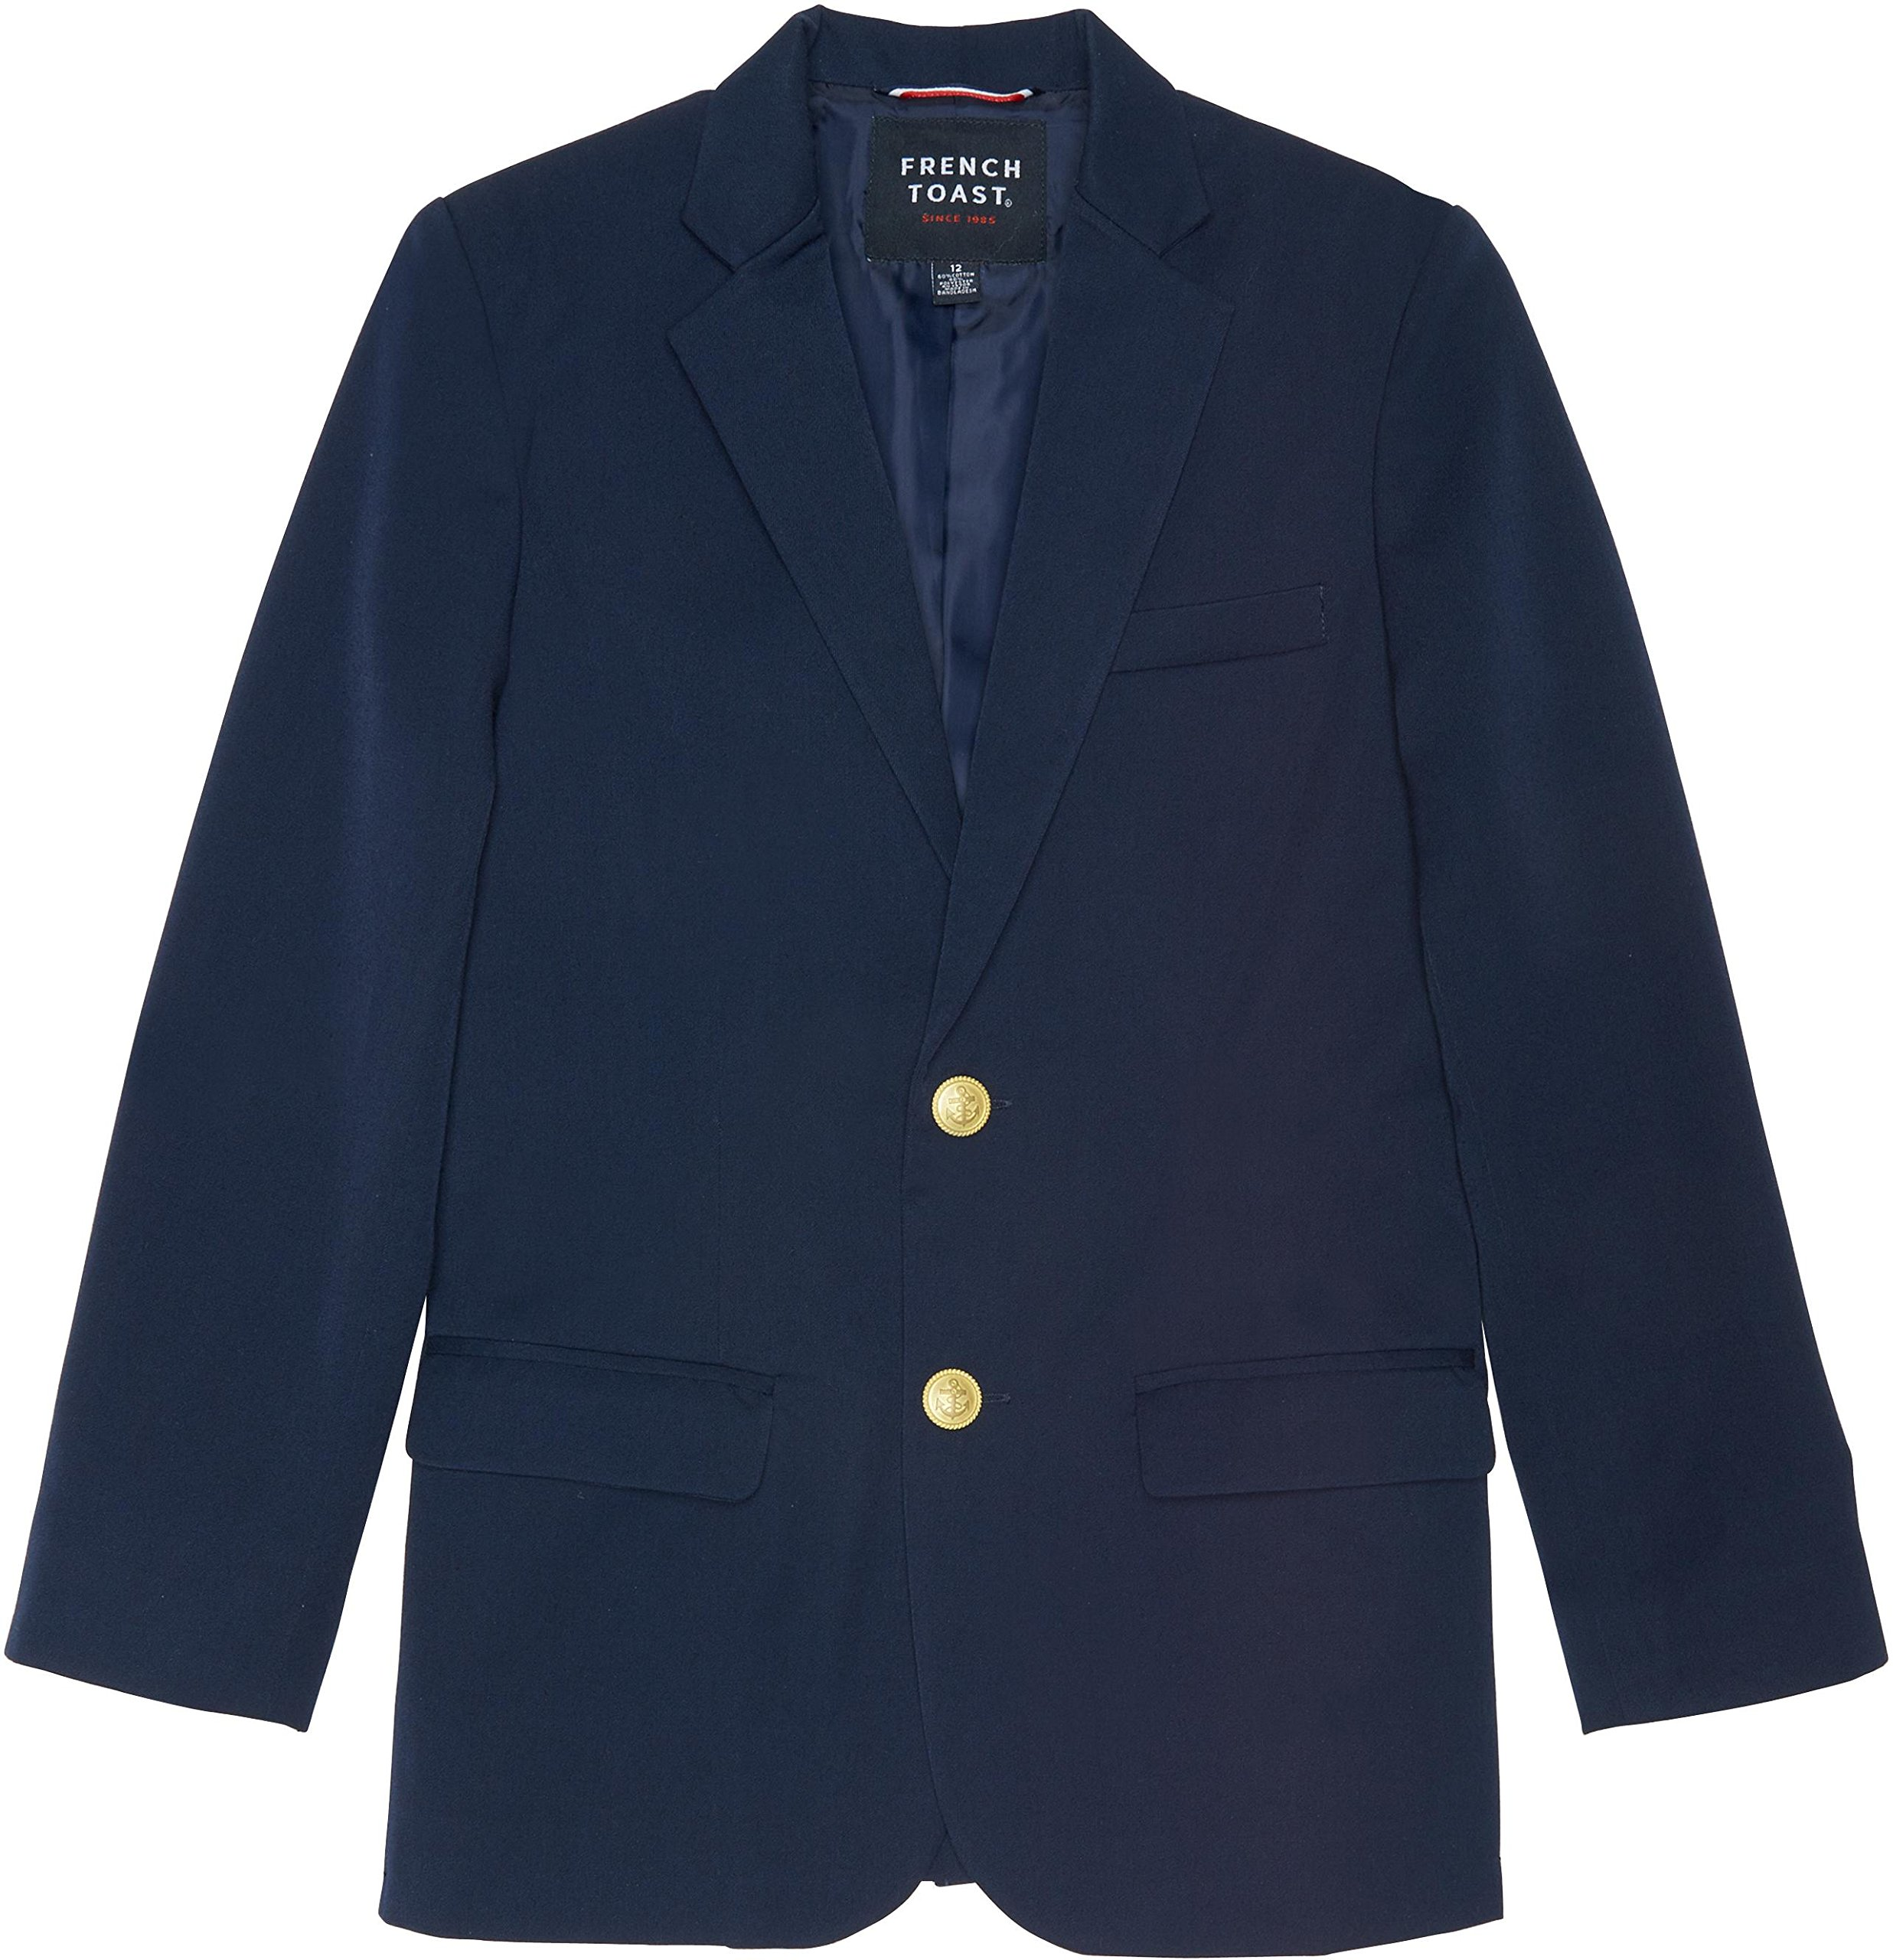 French Toast School Uniform Boys Classic School Blazer, Navy, 10 by French Toast (Image #1)